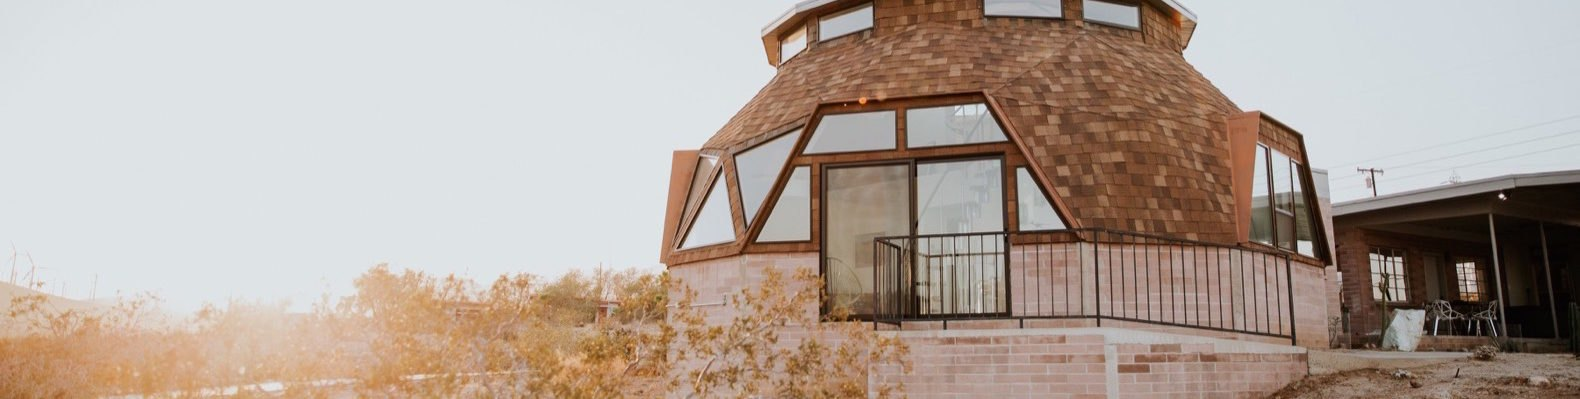 Exterior image of the Geodesic Dome House